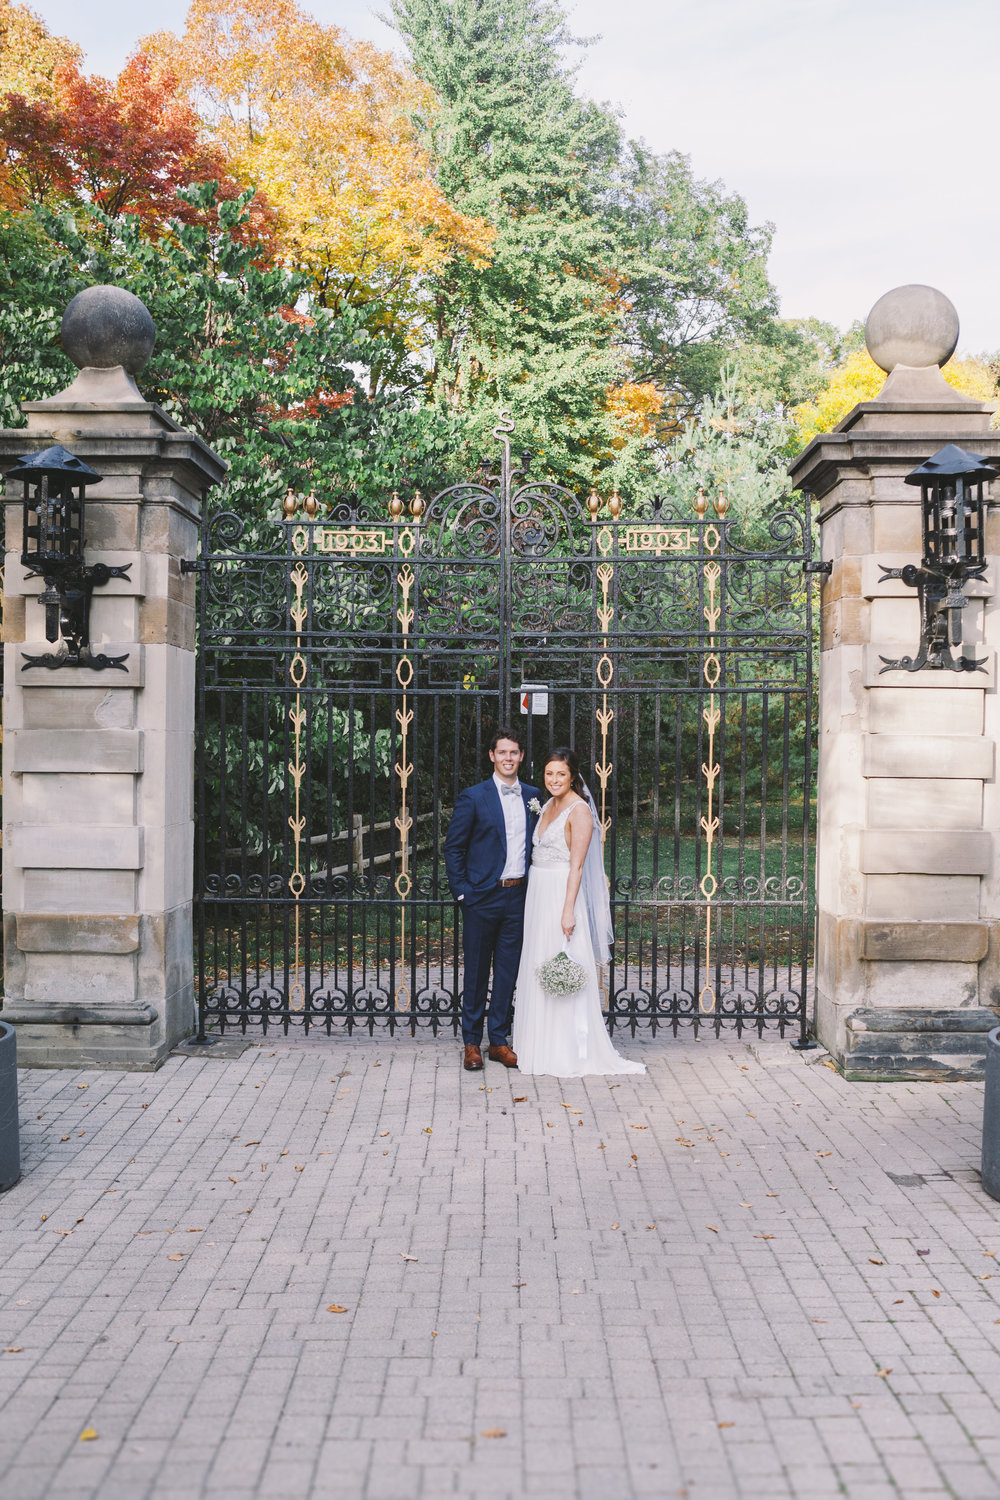 Bride and groom outside Craigleigh Gardens gate.